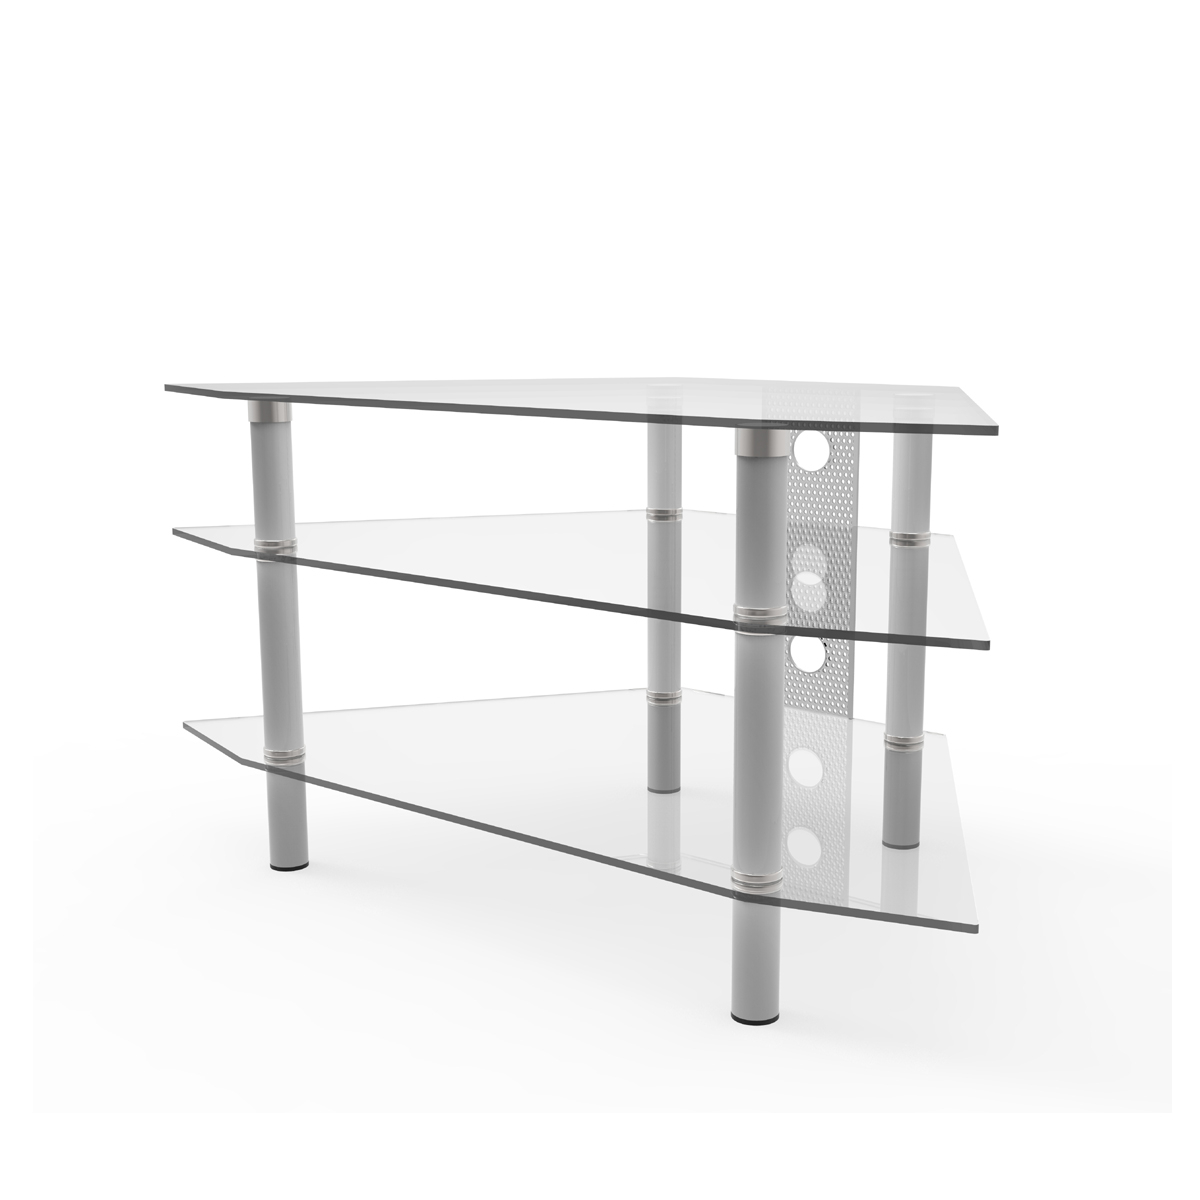 Clear Glass Tv Stand With Regard To Newest Ruby 44 Inch Corner Glass Tv Stand Silver And Clear Glass (Gallery 5 of 20)